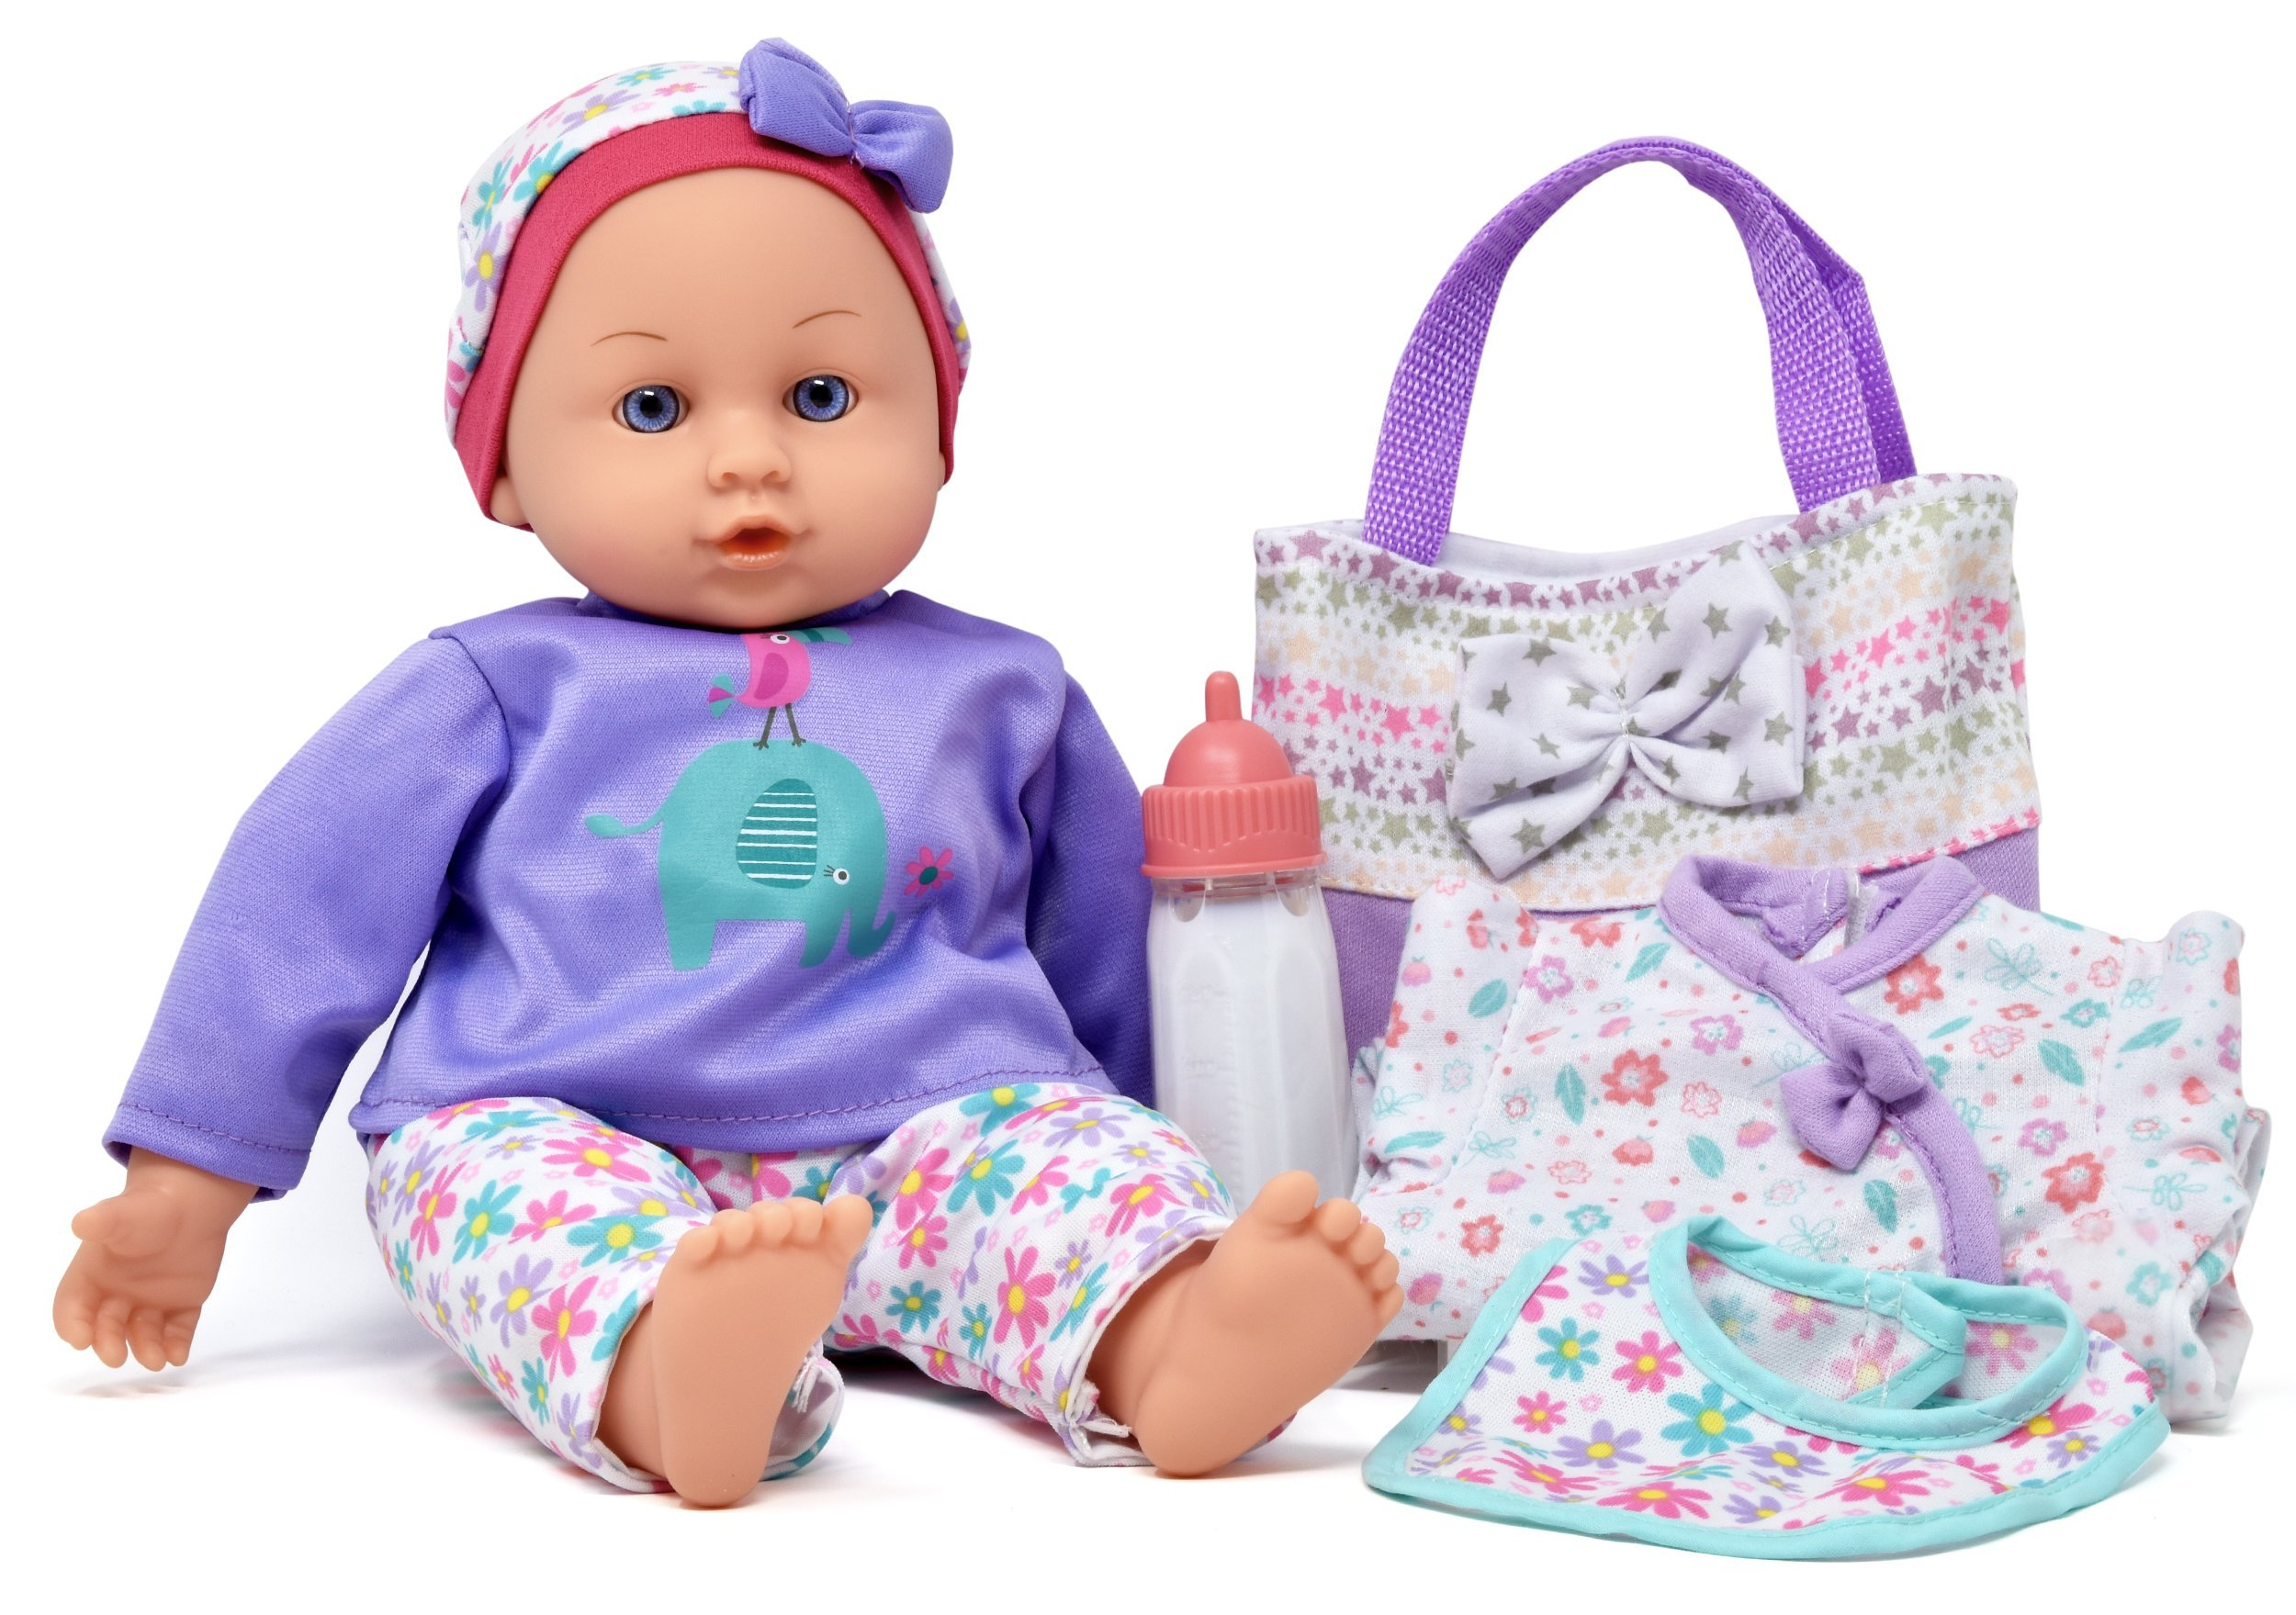 14'' Baby Doll Travel Carry Case Set, Adorable Doll comes Dressed in Clothes, Diaper and Hat, Includes Baby Doll Diaper Bag Set, Additional Onesie, Bib, and Milk Bottle Accessories